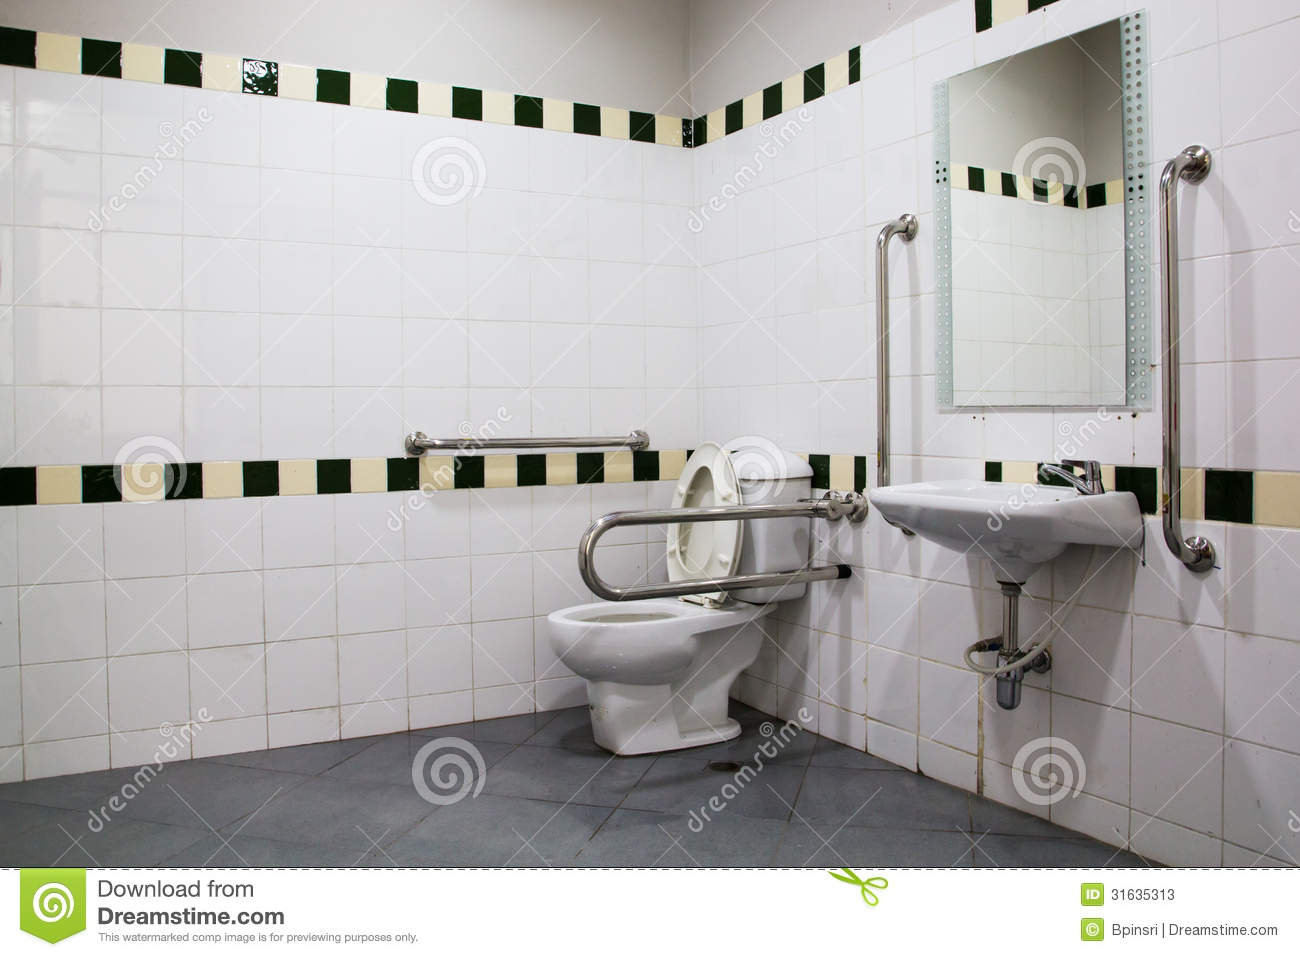 Handicap bathroom with grab bars and ceramic tile stock - Handicap bars for bathroom toilet ...